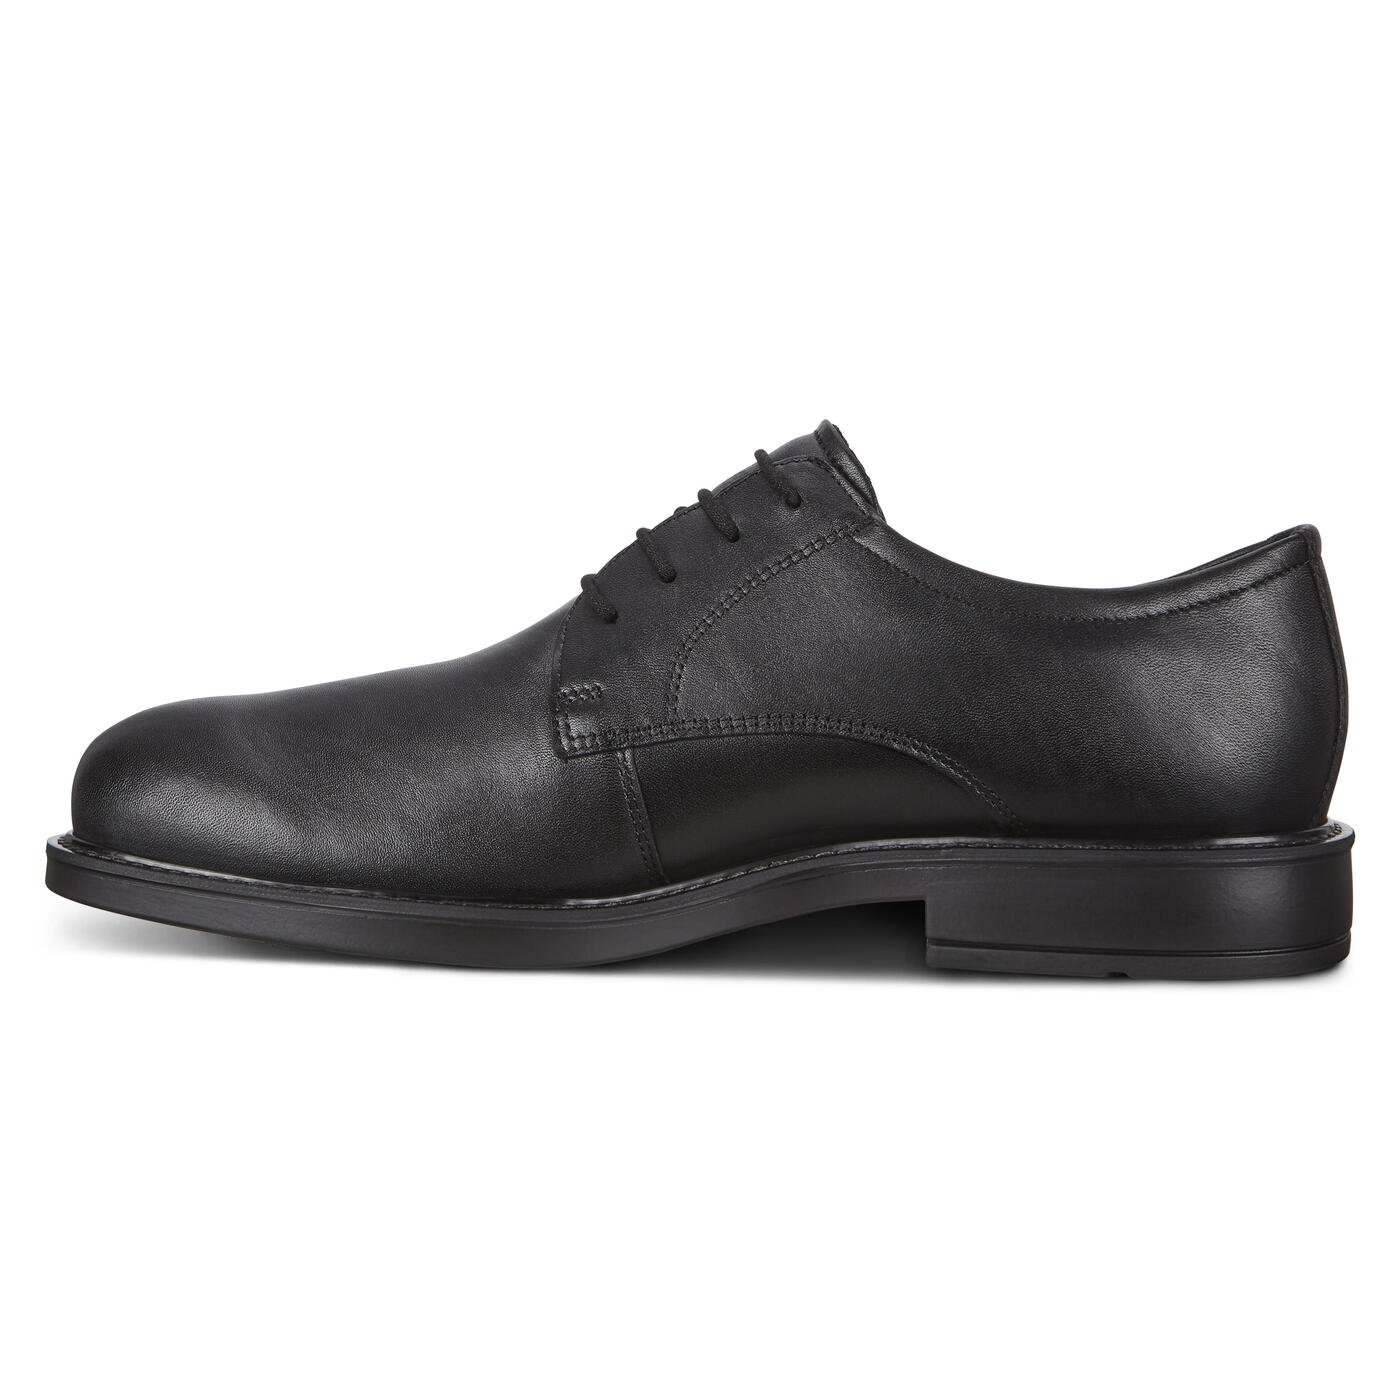 ECCO VITRUS™ III GTX Men's Dress Shoe